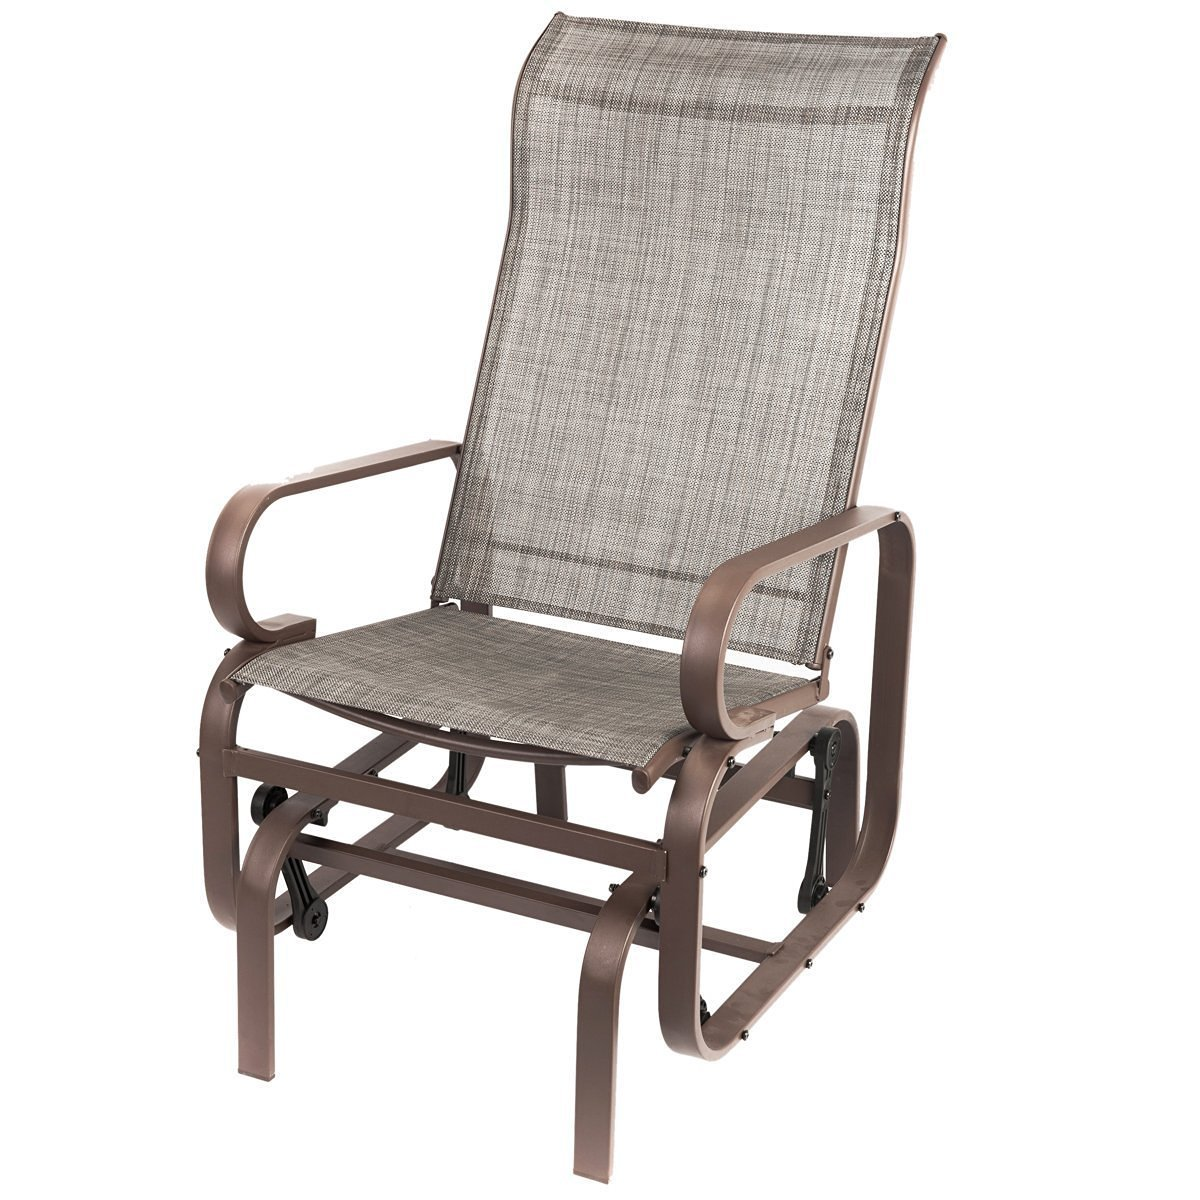 naturefun outdoor patio rocker chair balcony glider rocking lounge rh walmart com patio glider chairs metal patio glider chair